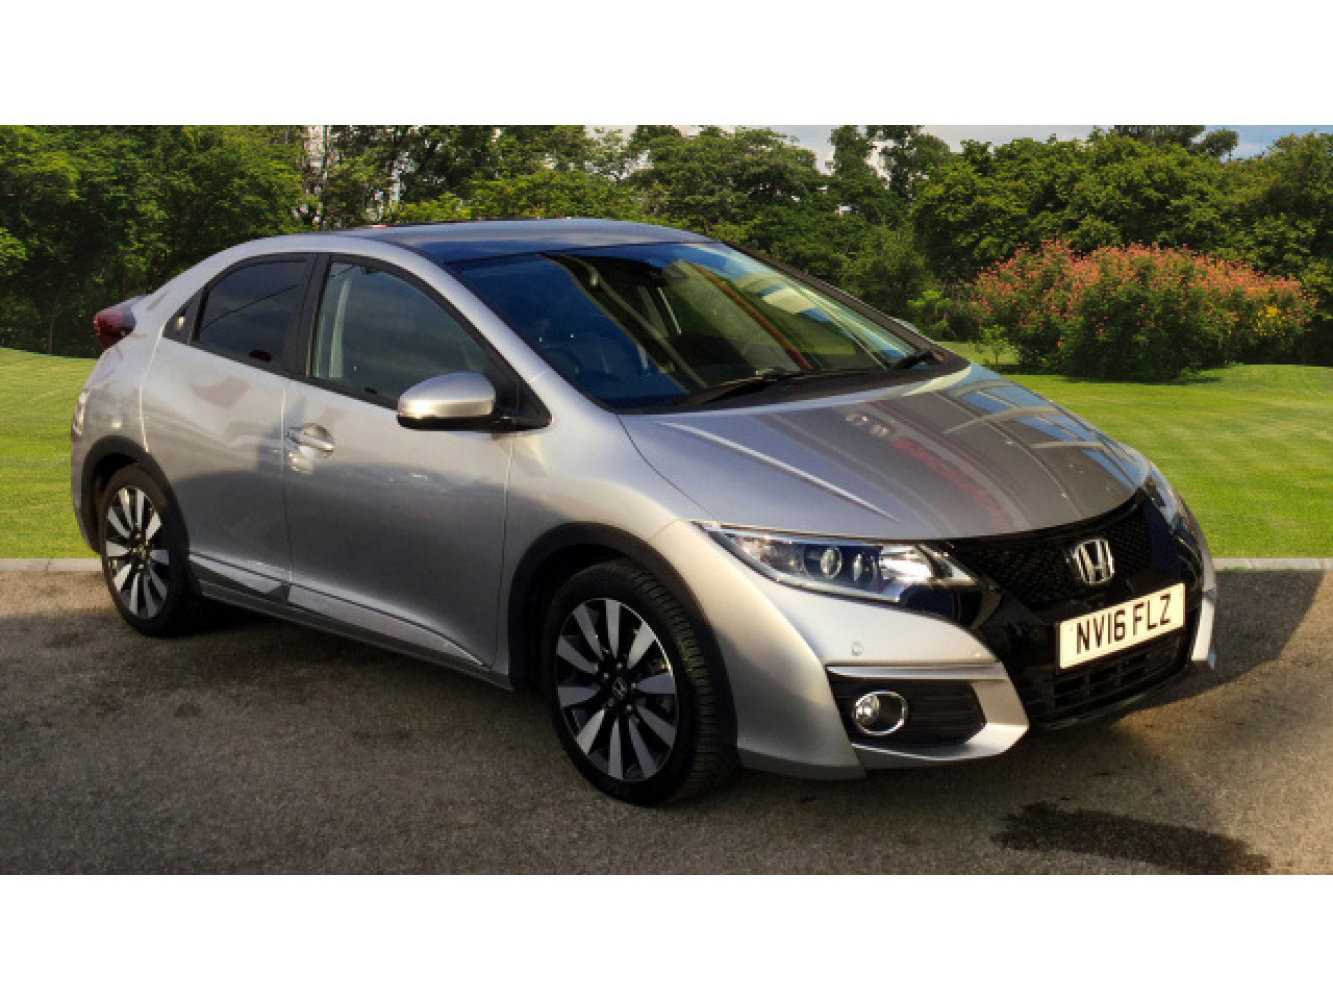 used honda civic 1 8 i vtec sr 5dr auto petrol hatchback for sale vertu honda. Black Bedroom Furniture Sets. Home Design Ideas